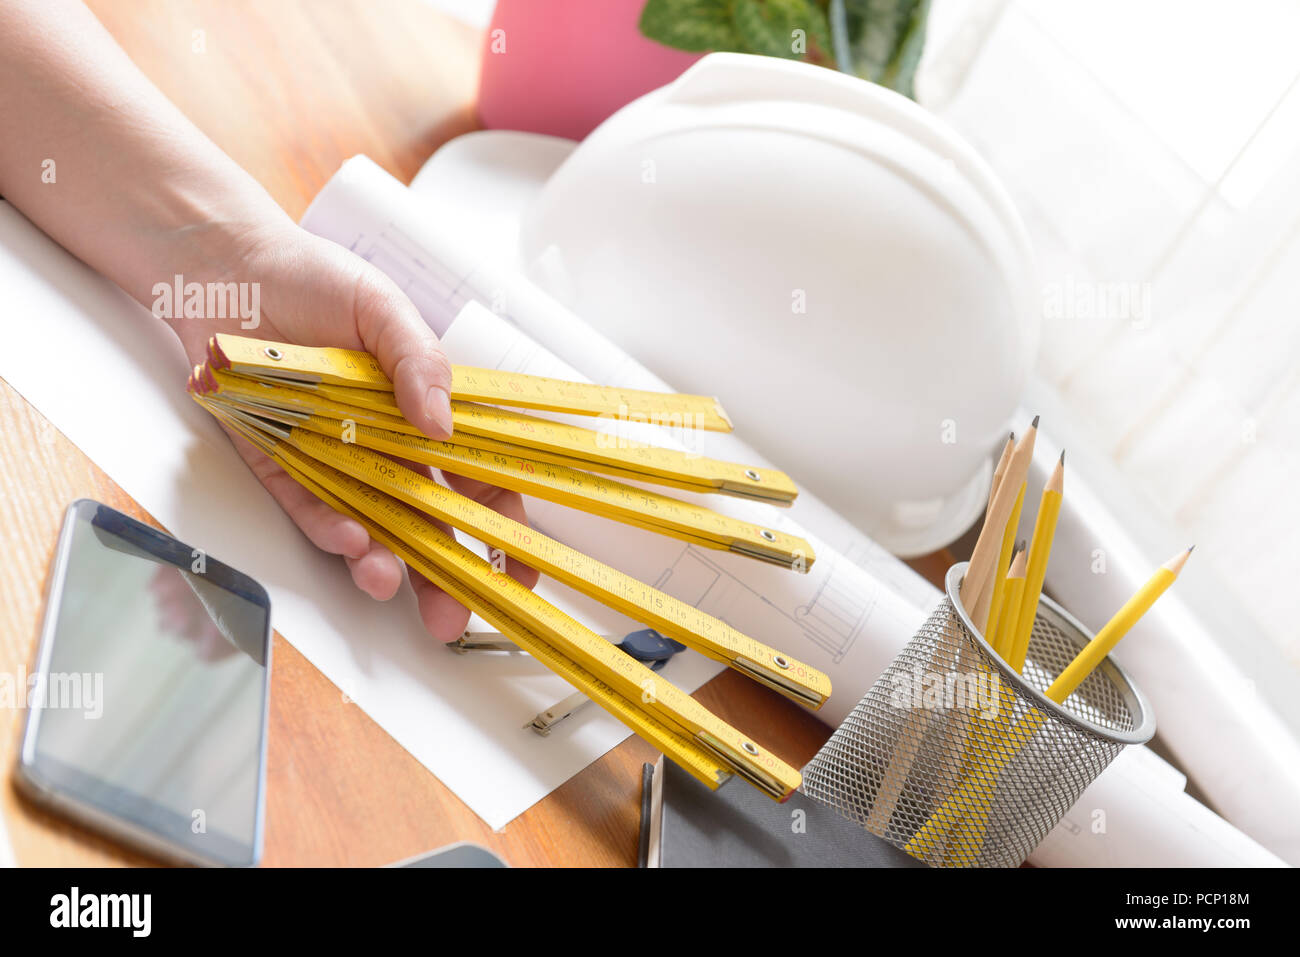 Construction plans in hand with measure, mobile phone, and drawing tools, helmet. - Stock Image